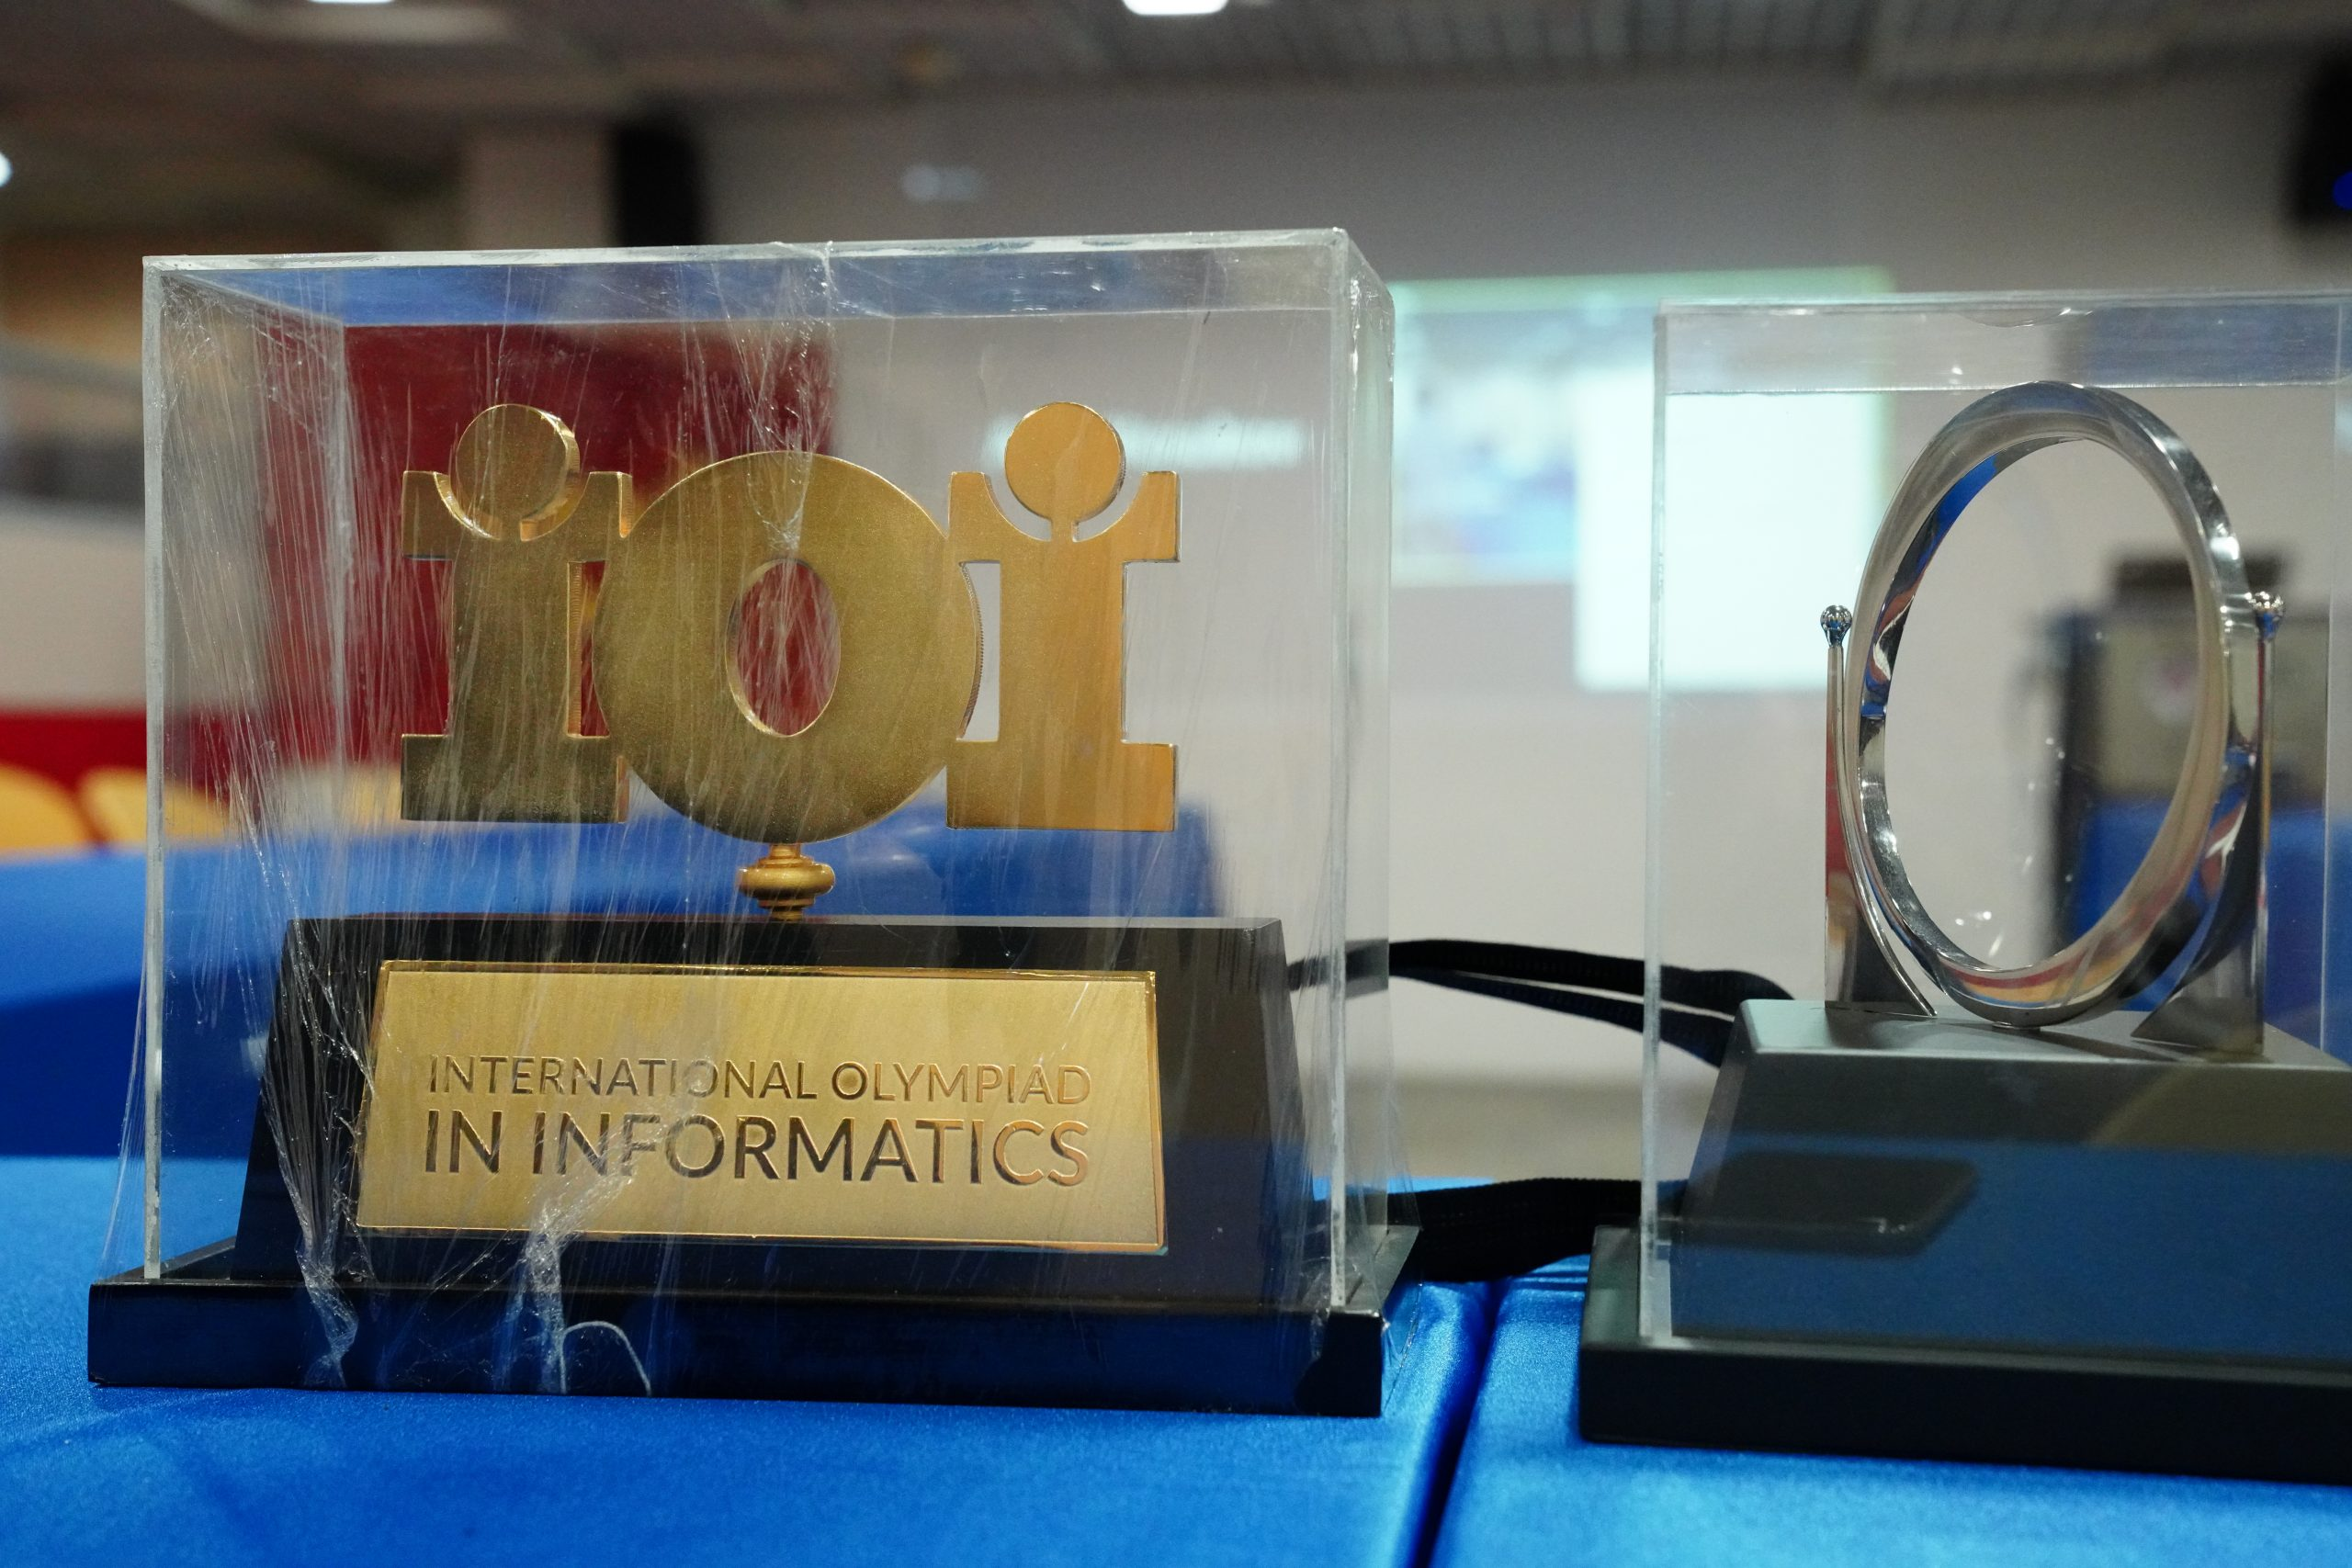 The new/left and old/right IOI trophies